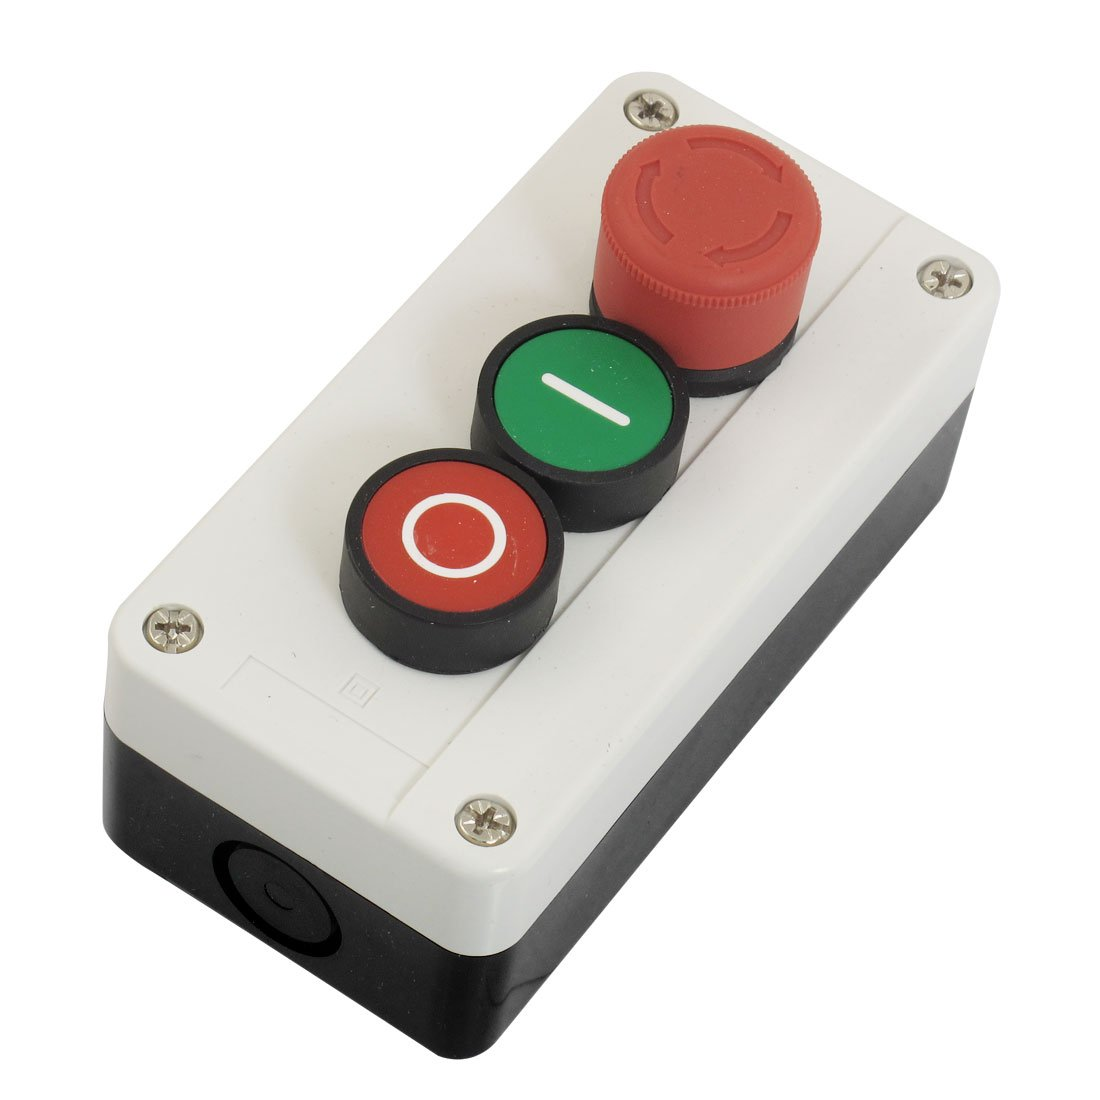 NC Emergency Stop NO Red Green Momentary Push Button Switch Station 600V 10A promotion 22mm nc n c red mushroom emergency stop push button switch 600v 10a